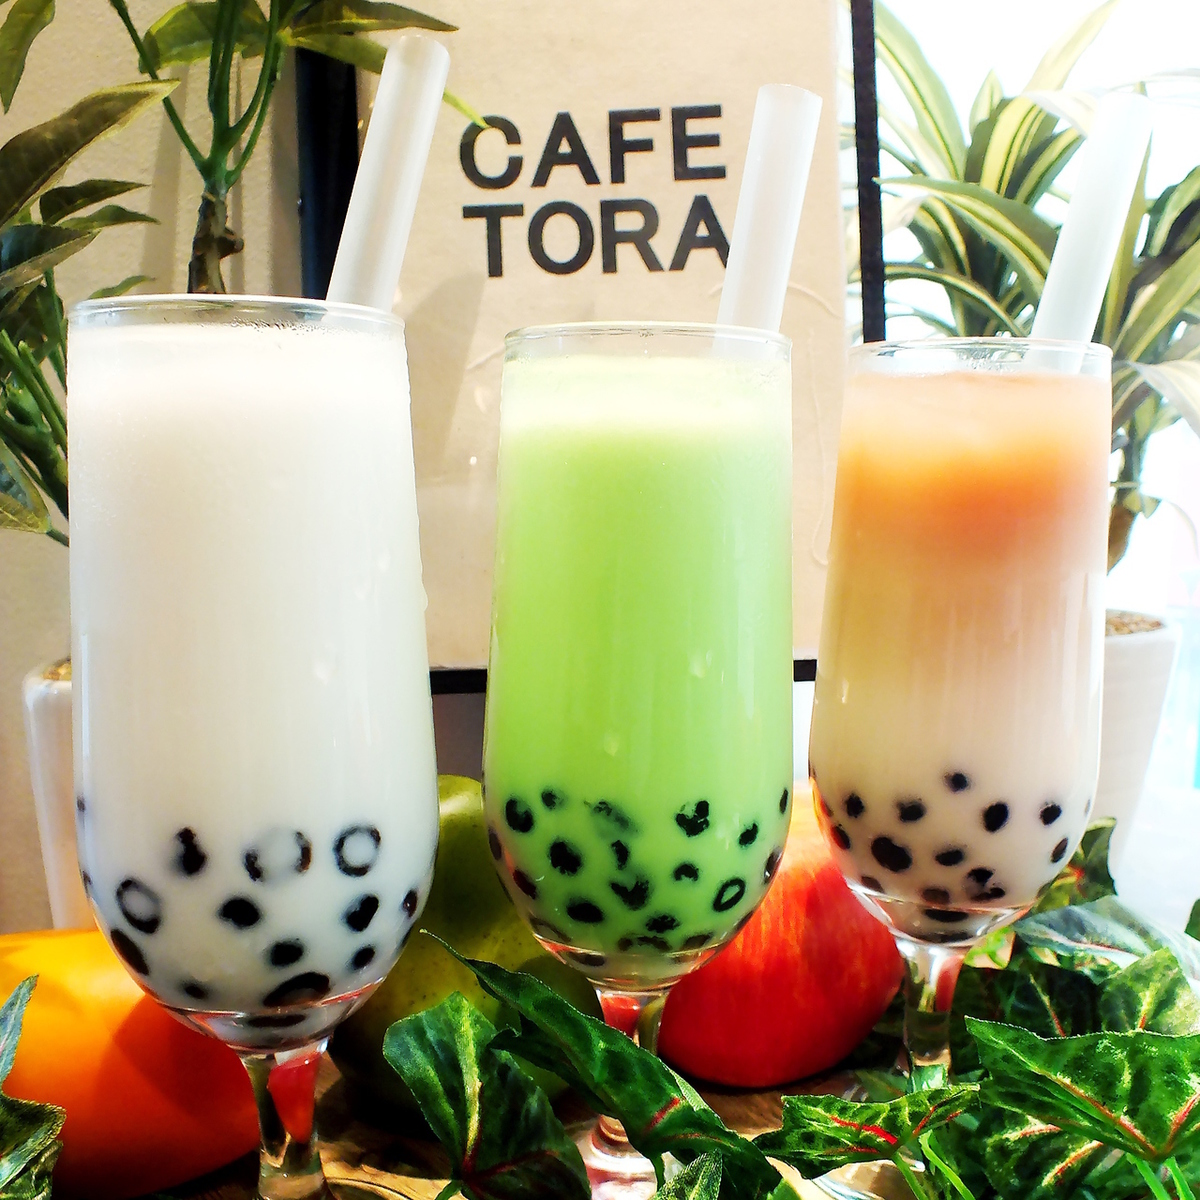 Tapioca drink is also recommended ☆